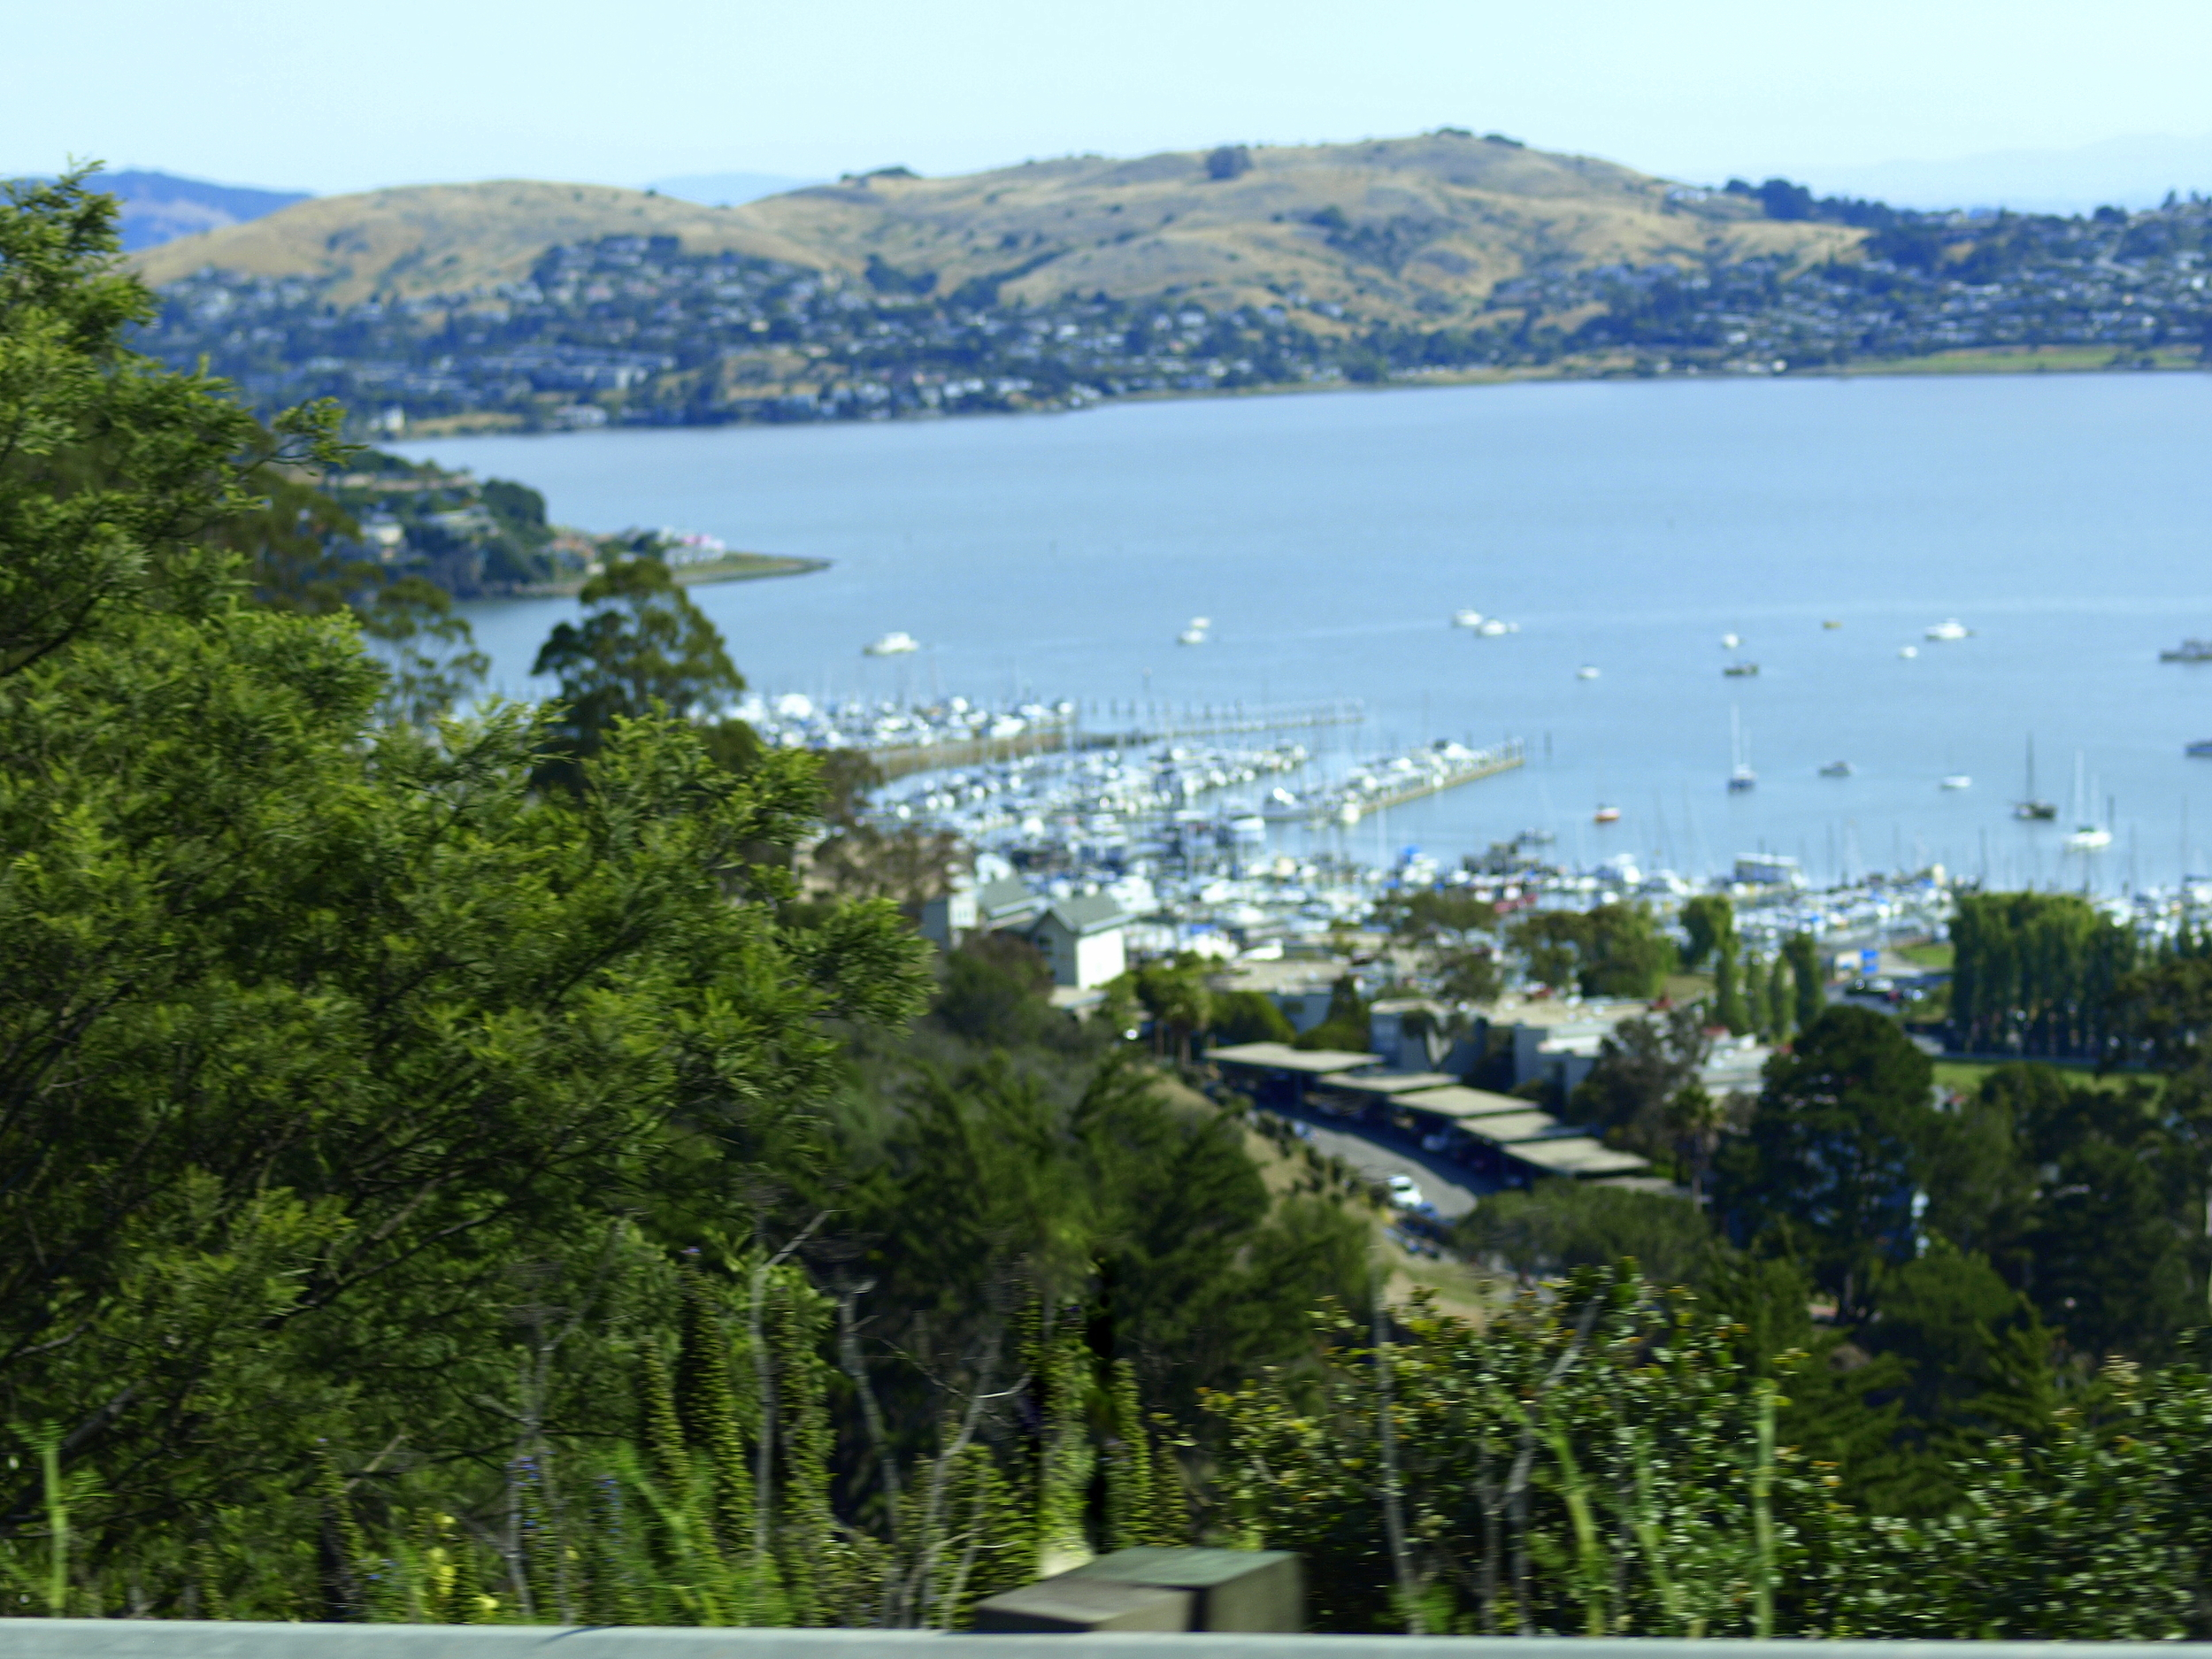 Sausalito, CA (photo taken from a moving car)